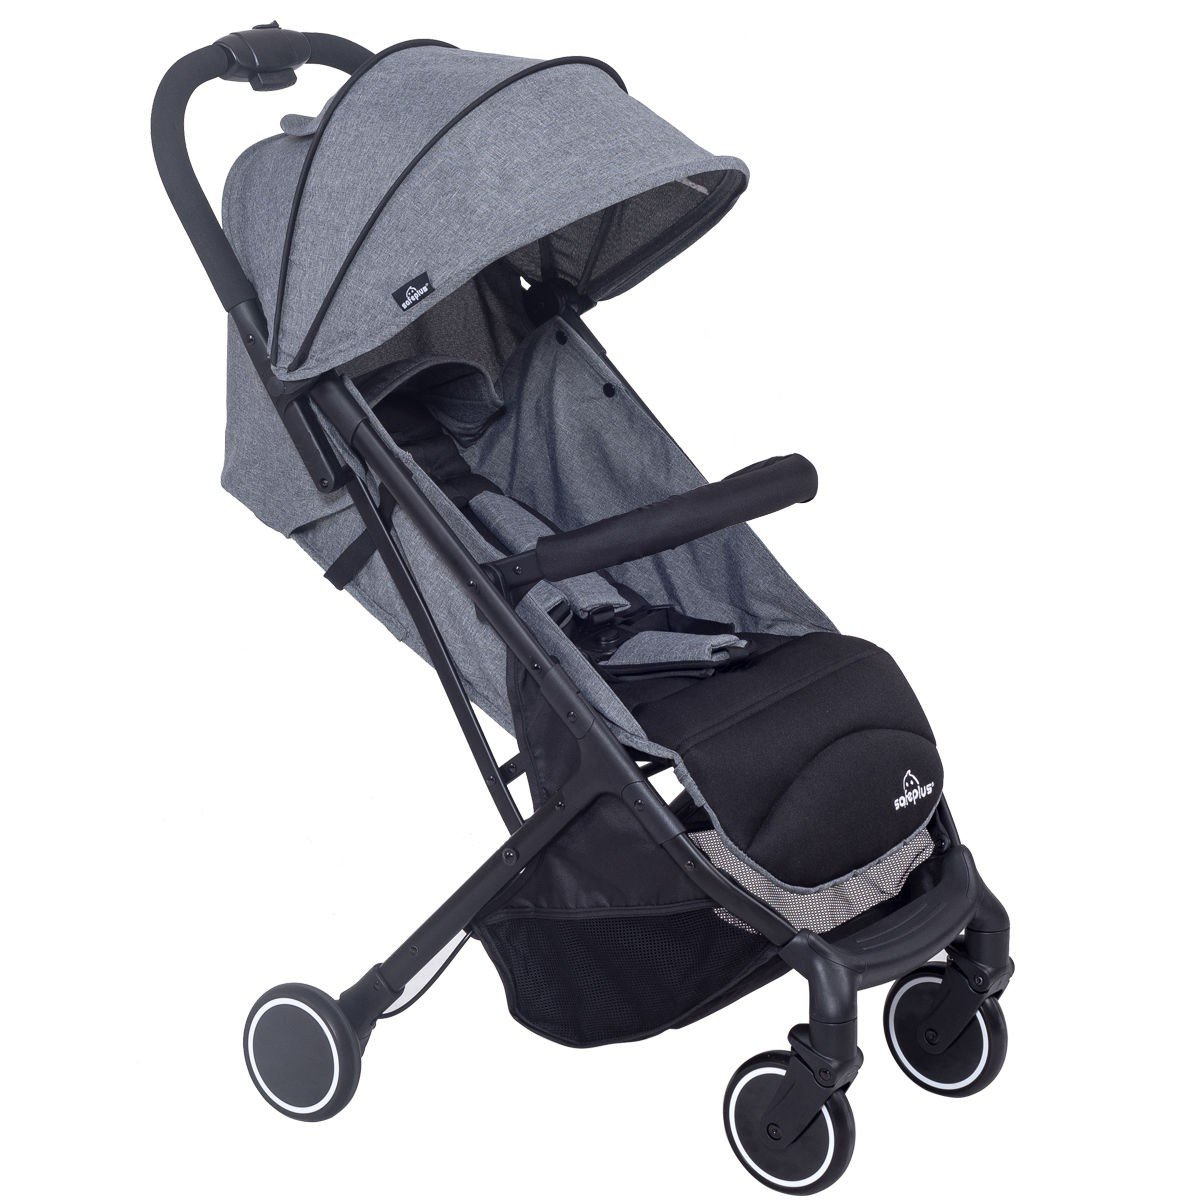 MD Group Baby Stroller Travel Foldable Lightweight Steel Frame & 300D Fabric Gray Color